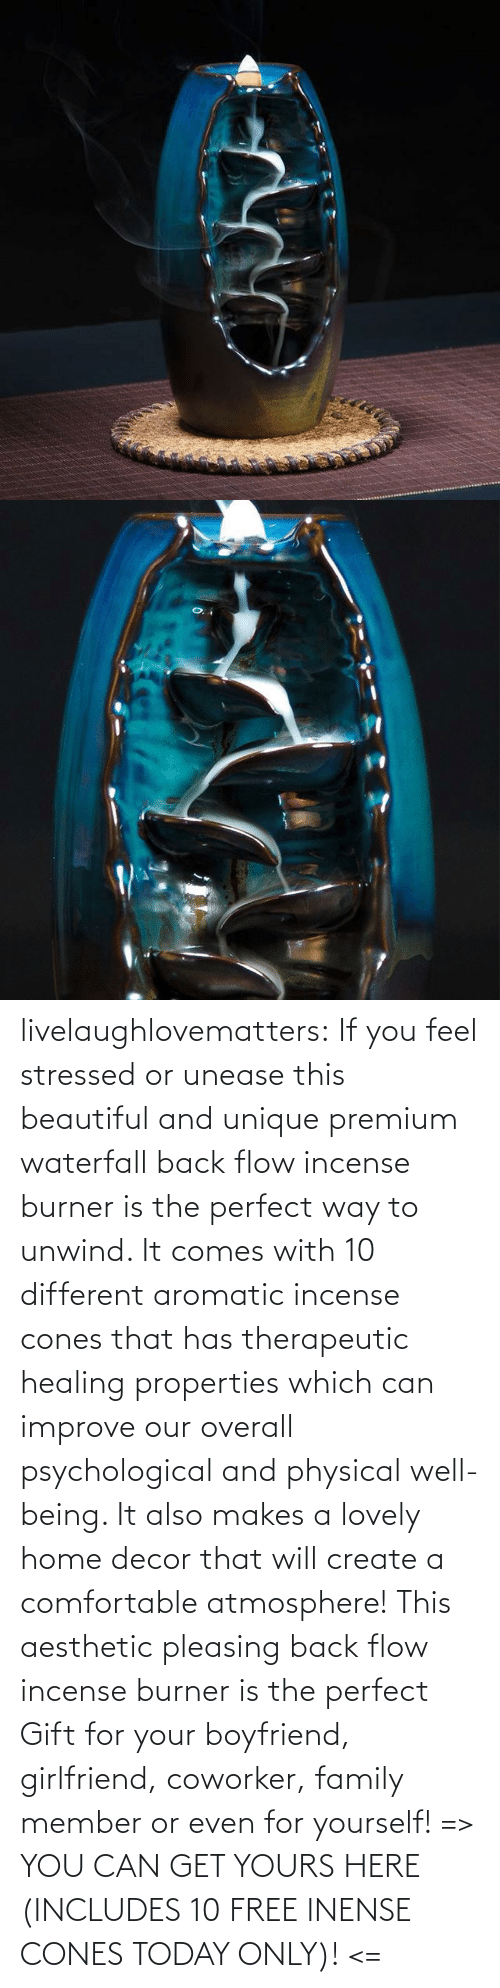 Beautiful, Comfortable, and Family: livelaughlovematters: If you feel stressed or unease this beautiful and unique premium waterfall back flow incense burner is the perfect way to unwind. It comes with 10 different aromatic incense cones that has therapeutic healing properties which can improve our overall psychological and physical well-being. It also makes a lovely home decor that will create a comfortable atmosphere! This aesthetic pleasing back flow incense burner is the perfect Gift for your boyfriend, girlfriend, coworker, family member or even for yourself! => YOU CAN GET YOURS HERE (INCLUDES 10 FREE INENSE CONES TODAY ONLY)! <=